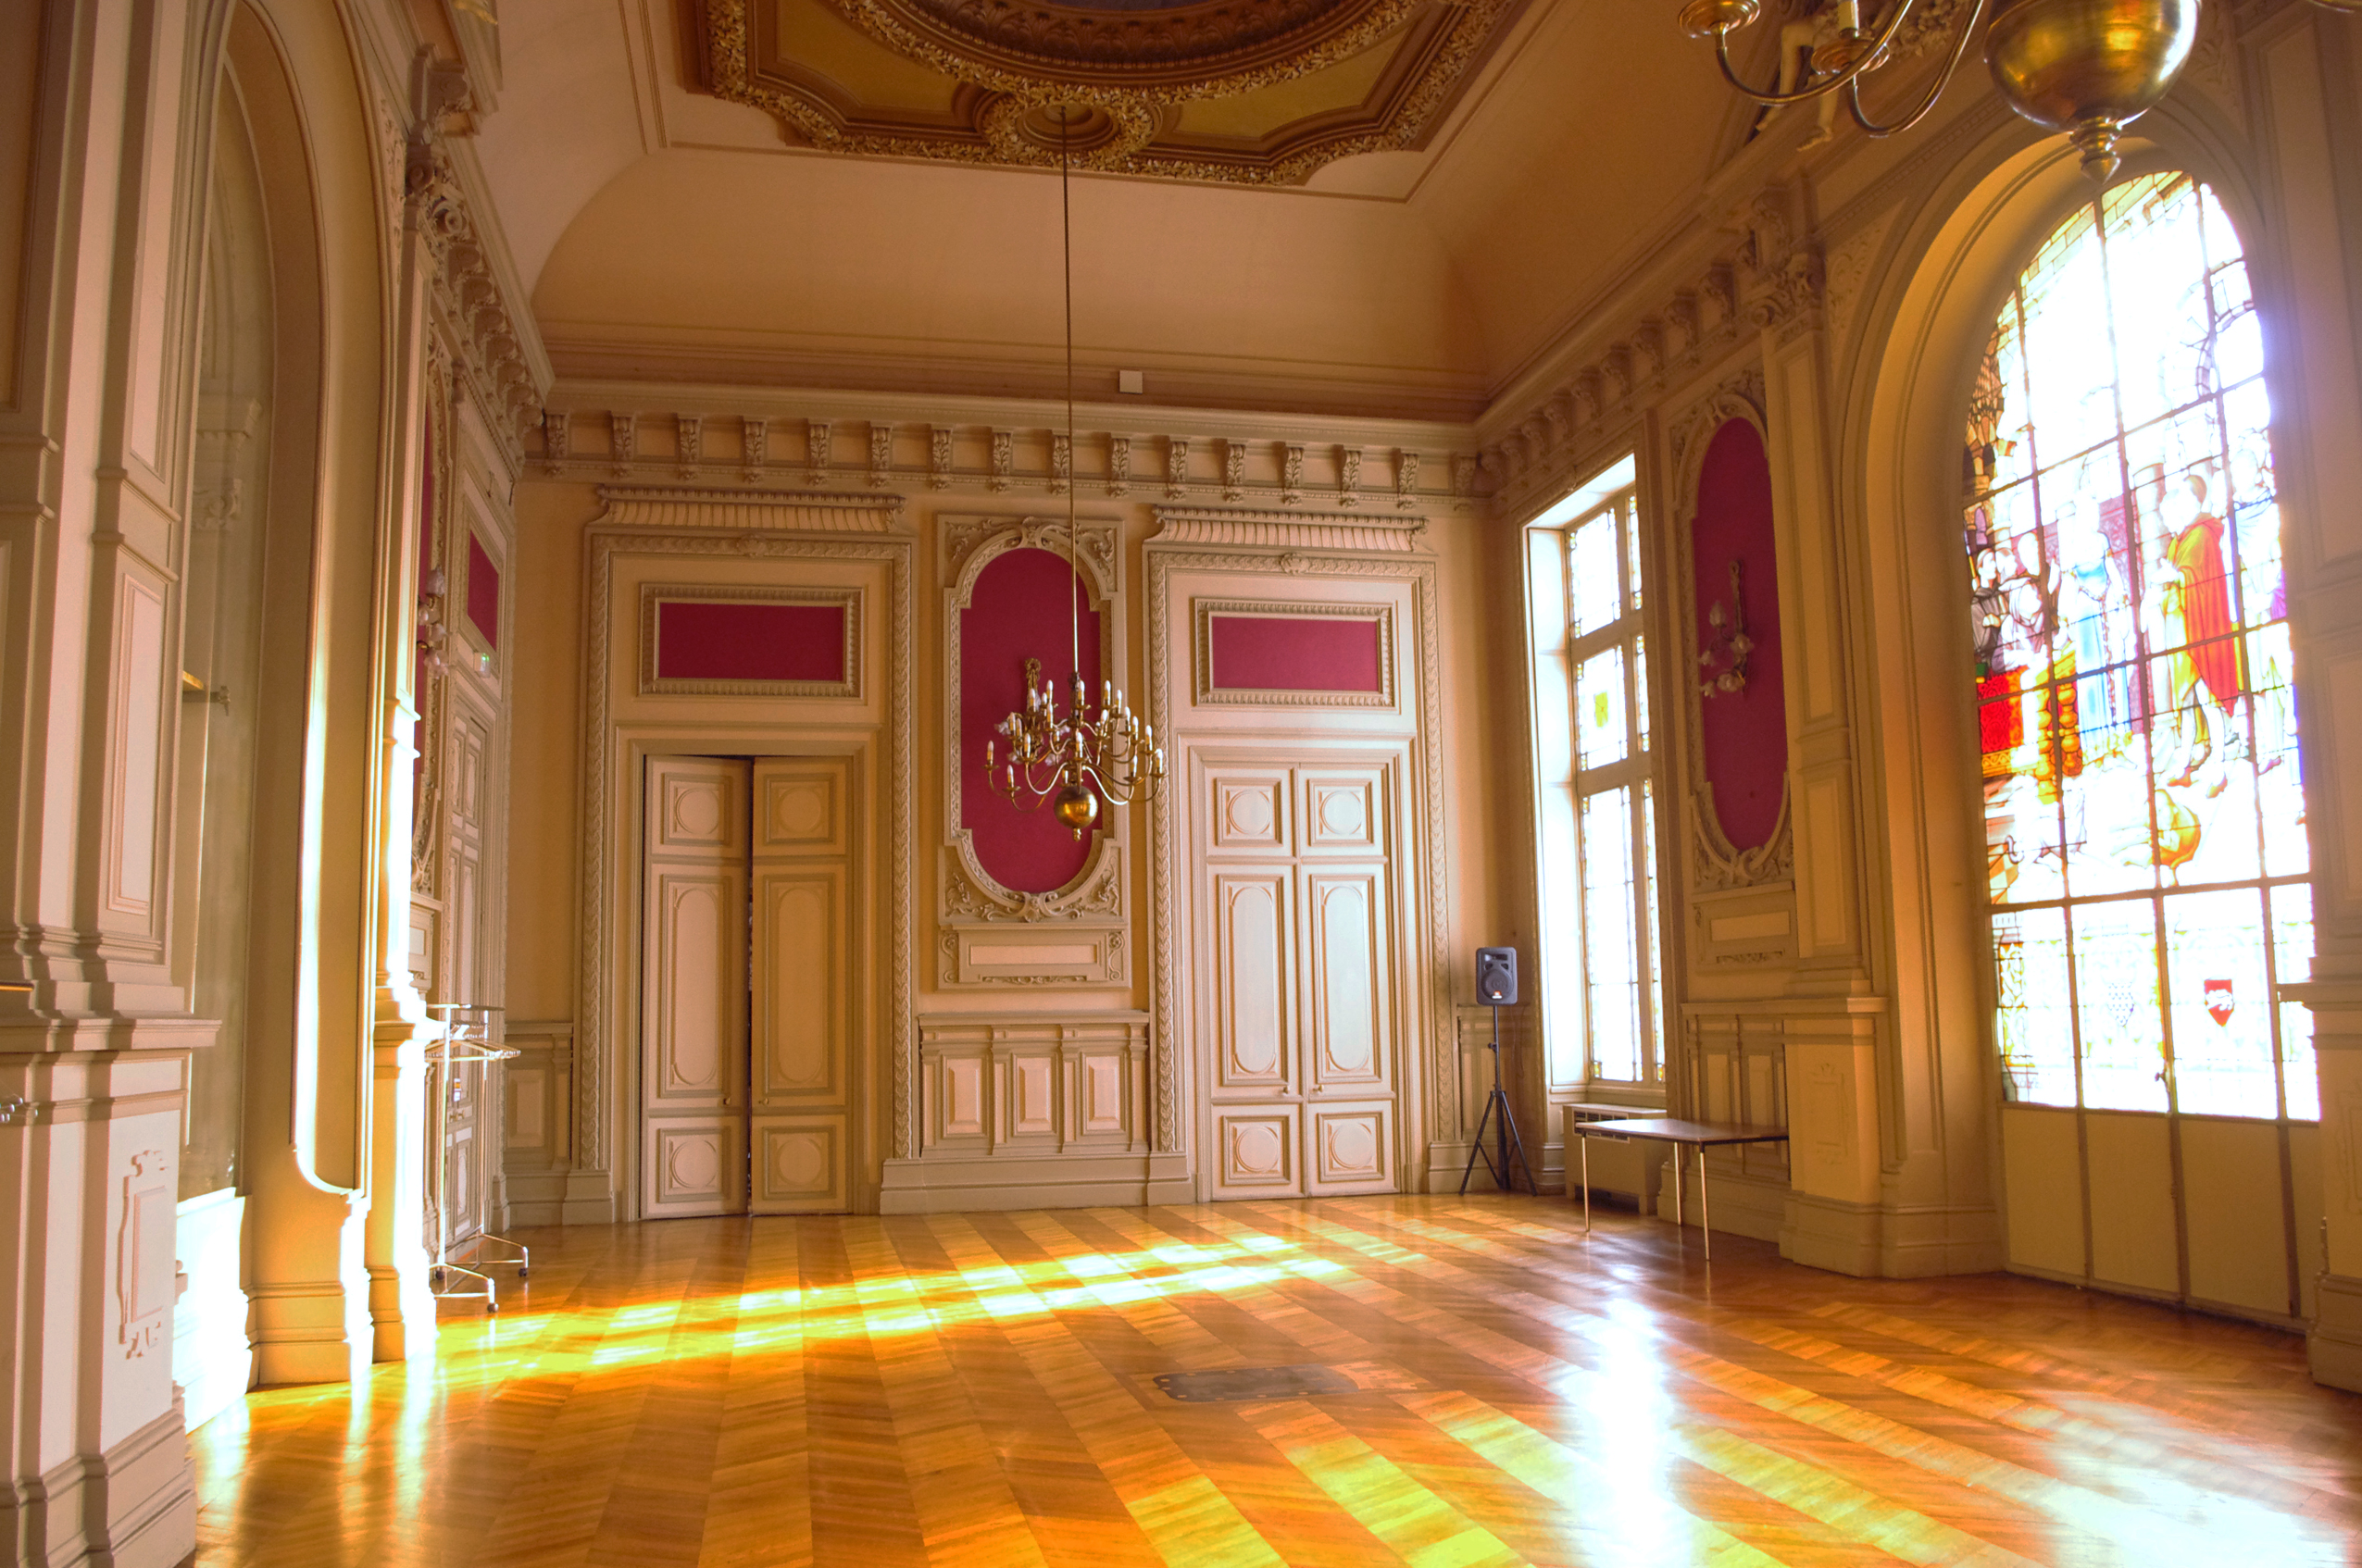 architecte interieur poitiers fabulous ducal palace poitiers with architecte interieur poitiers. Black Bedroom Furniture Sets. Home Design Ideas